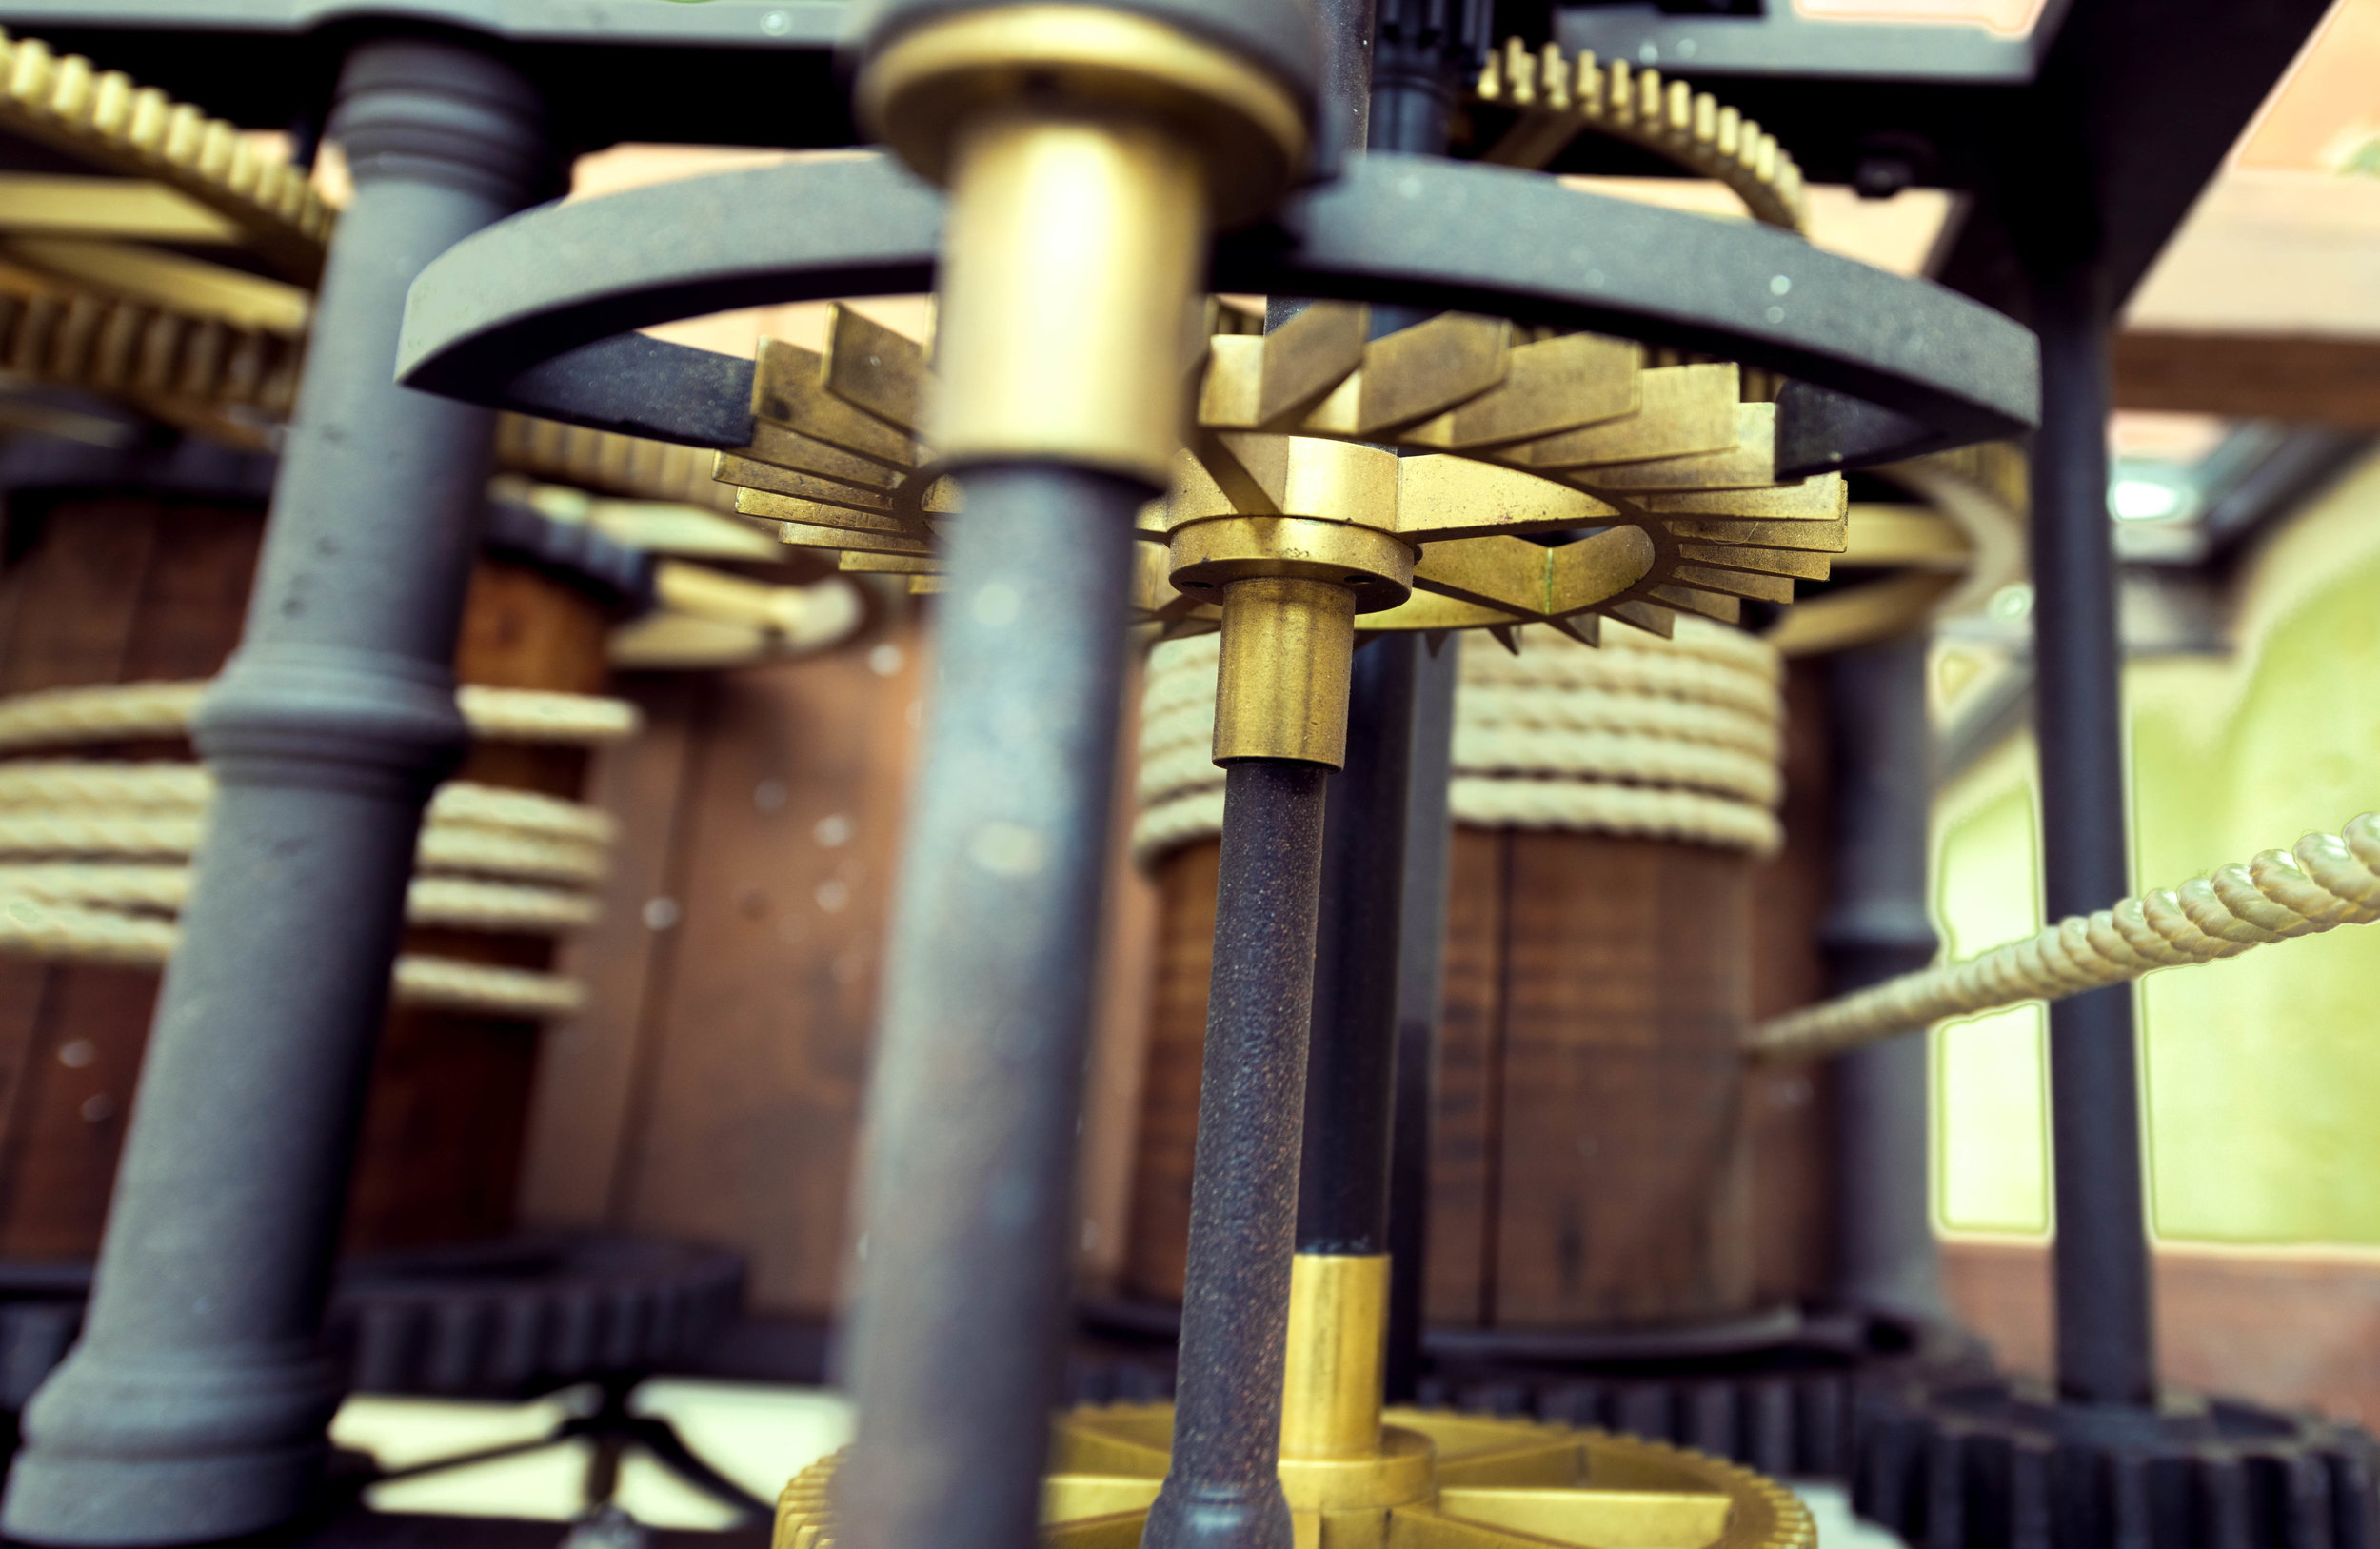 Clockworks - Gears, Rope, and Pulley